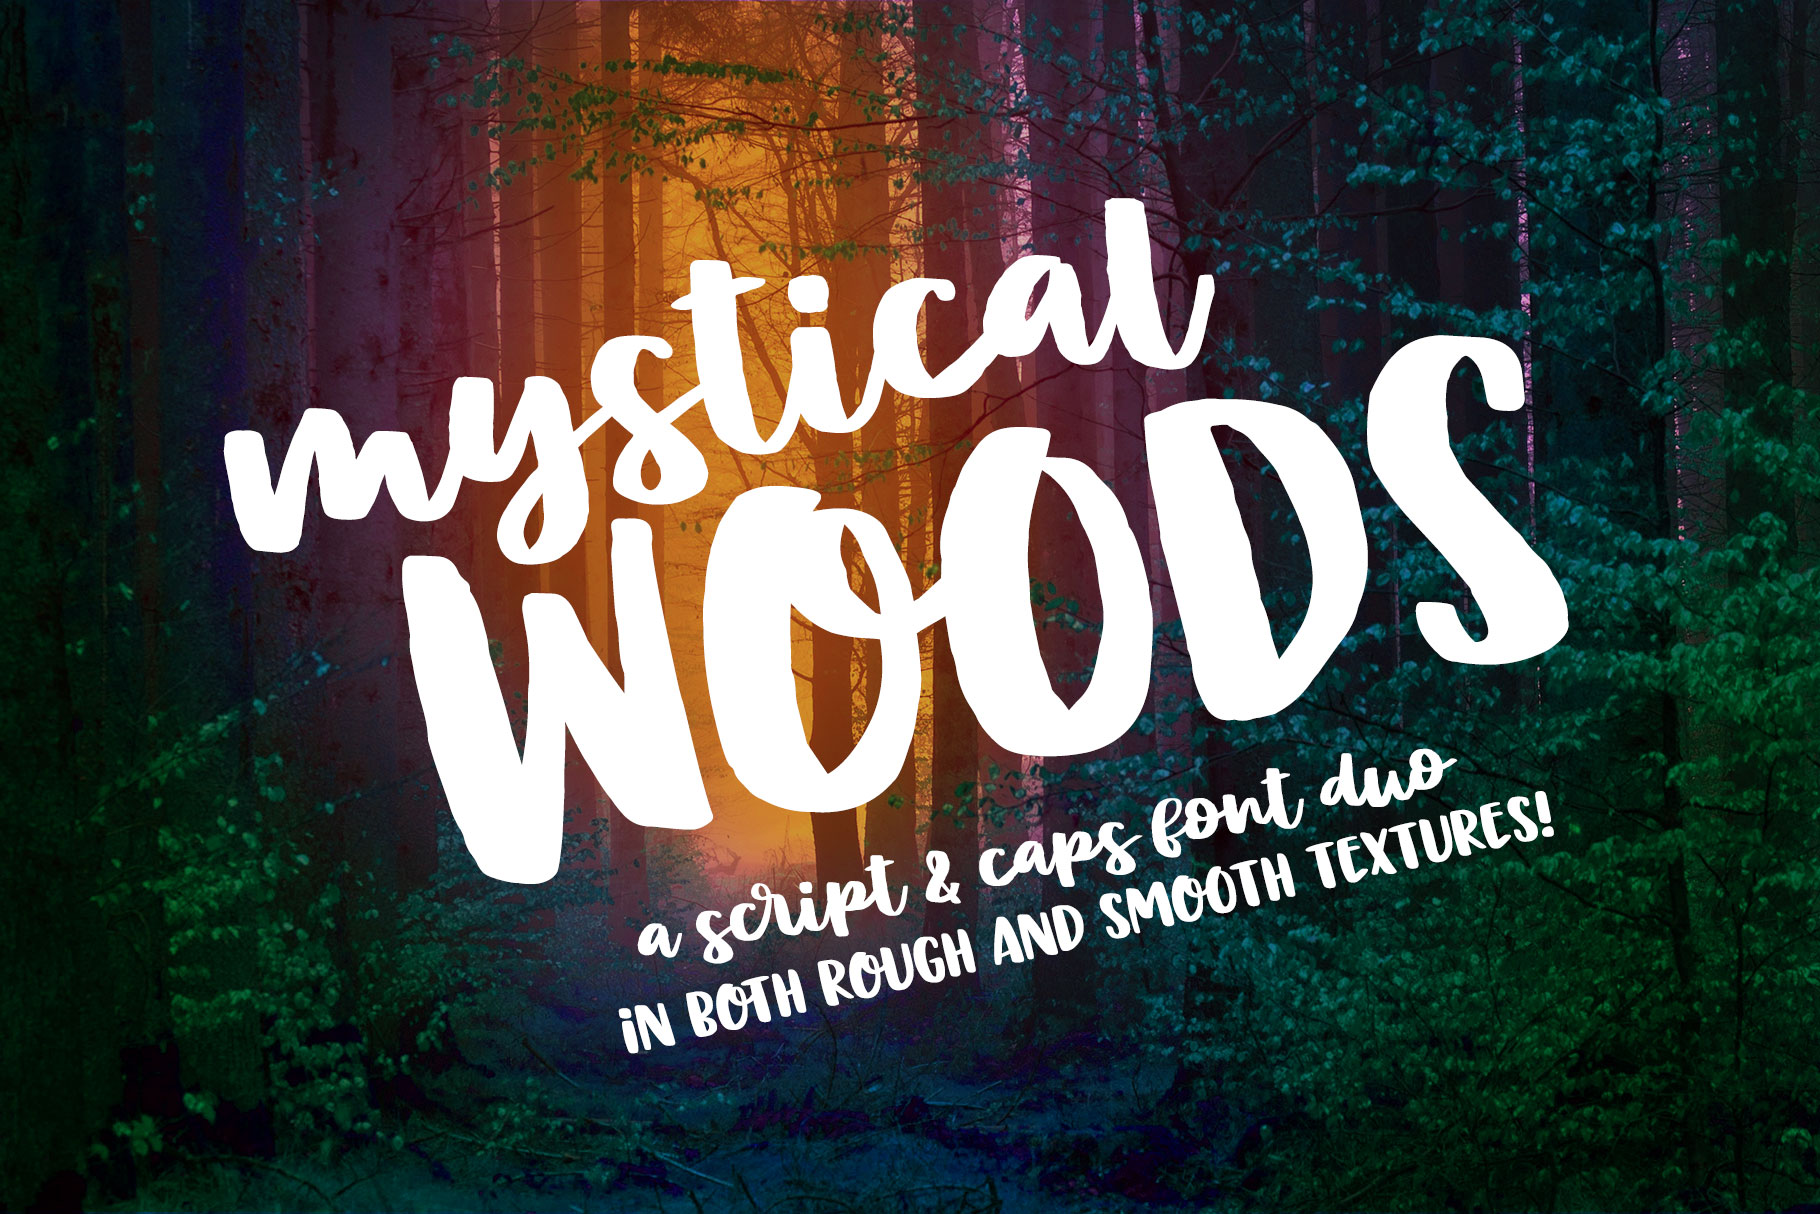 Mystical Woods: a script and caps duo! example image 1